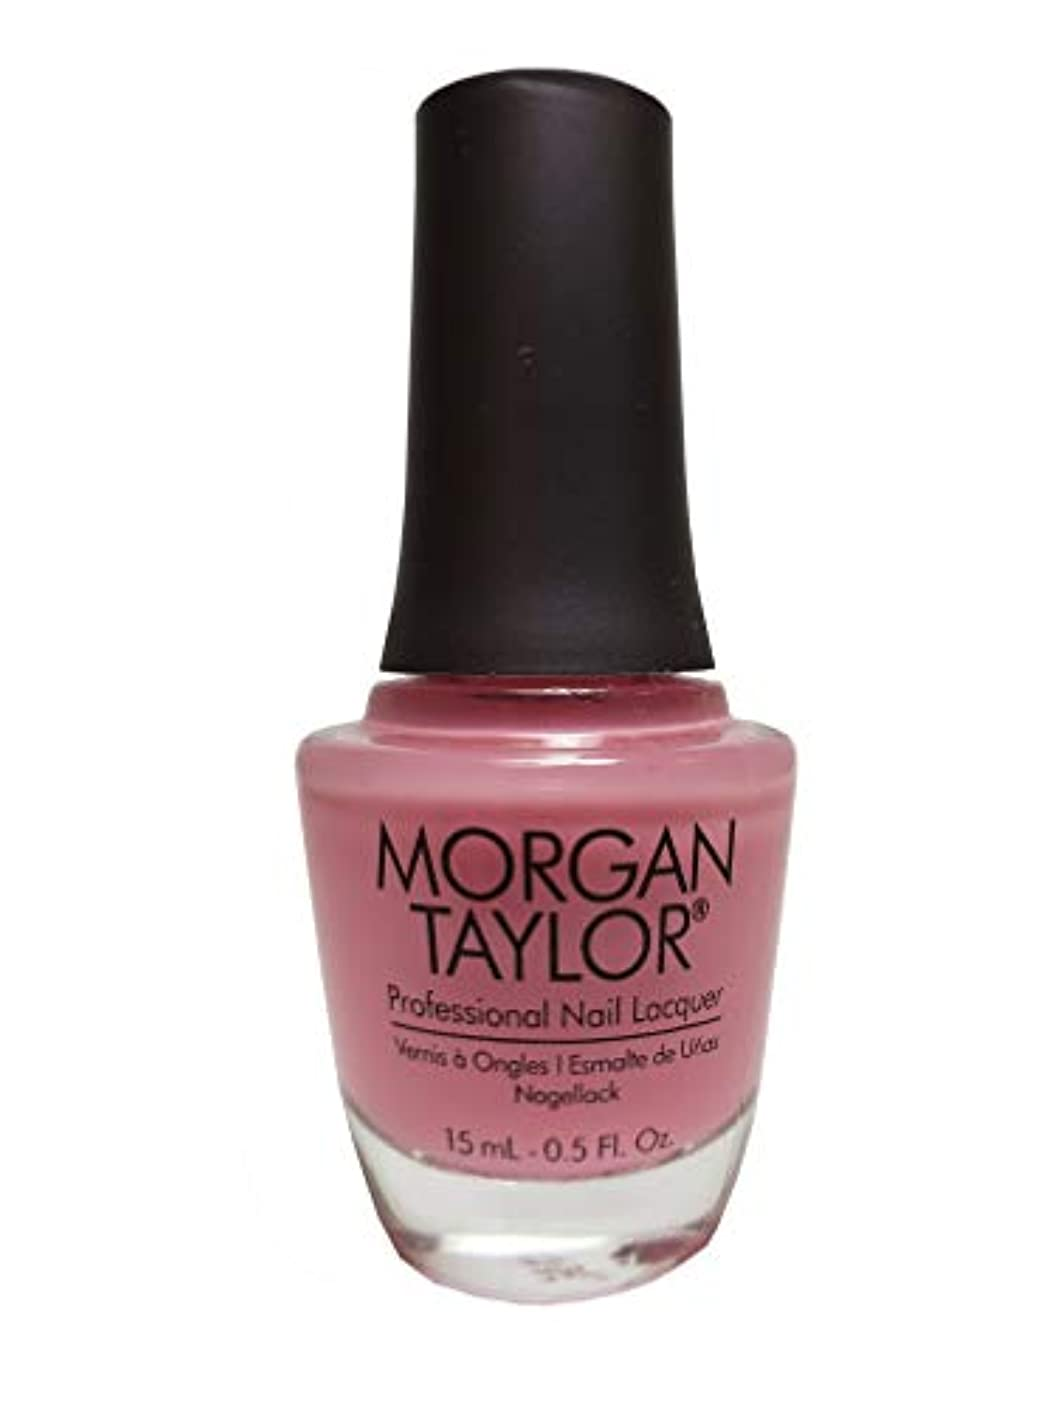 地下室中止しますサイレントMorgan Taylor Nail Lacquer - Tutus & Tights - 15ml / 0.5oz